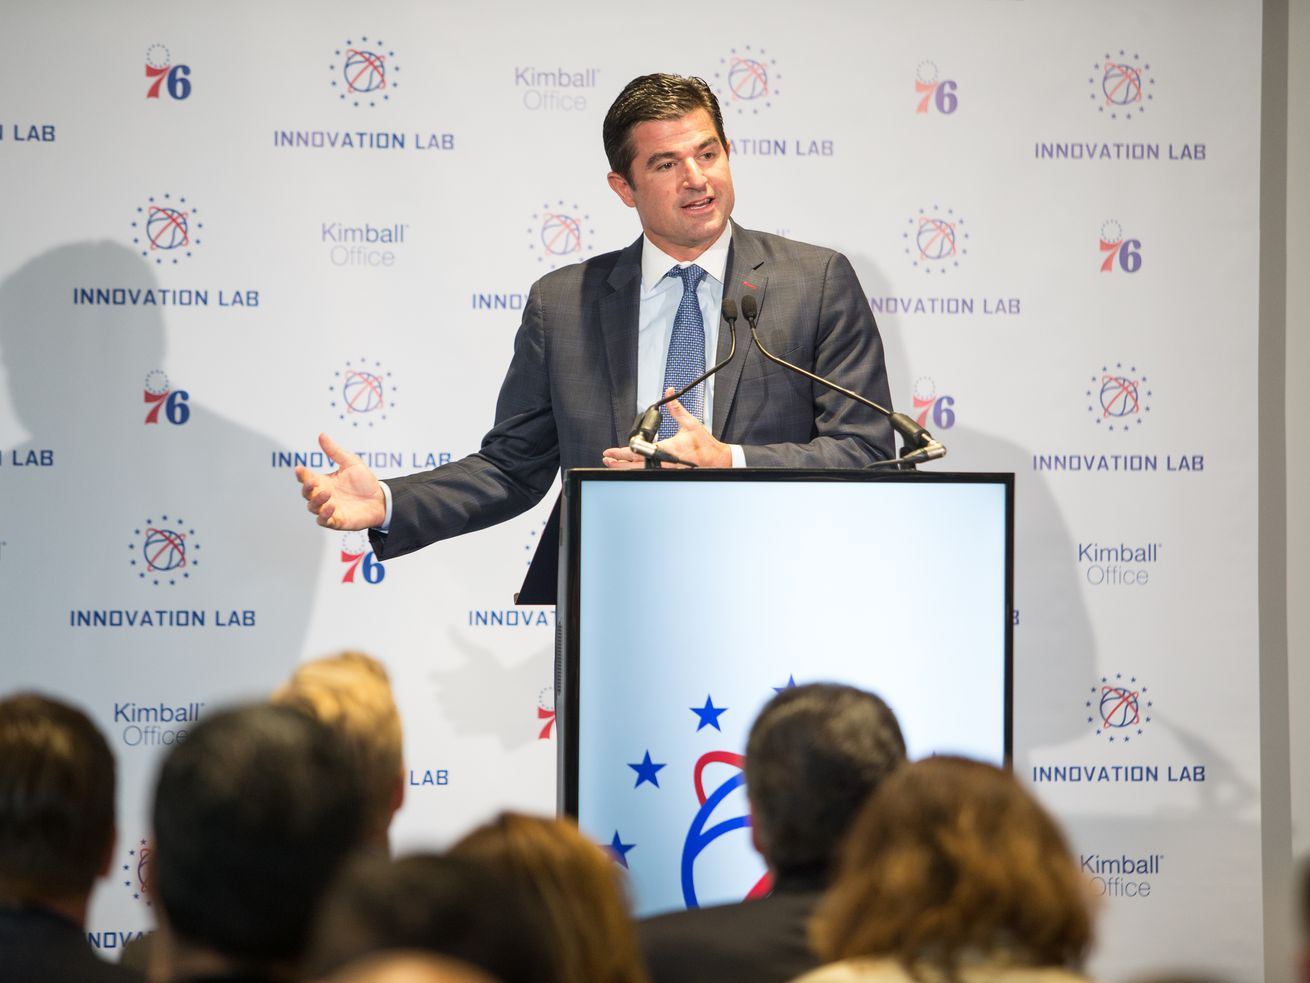 Philadelphia 76ers' CEO Scott O'Neil stands at a podium to speak at an event.